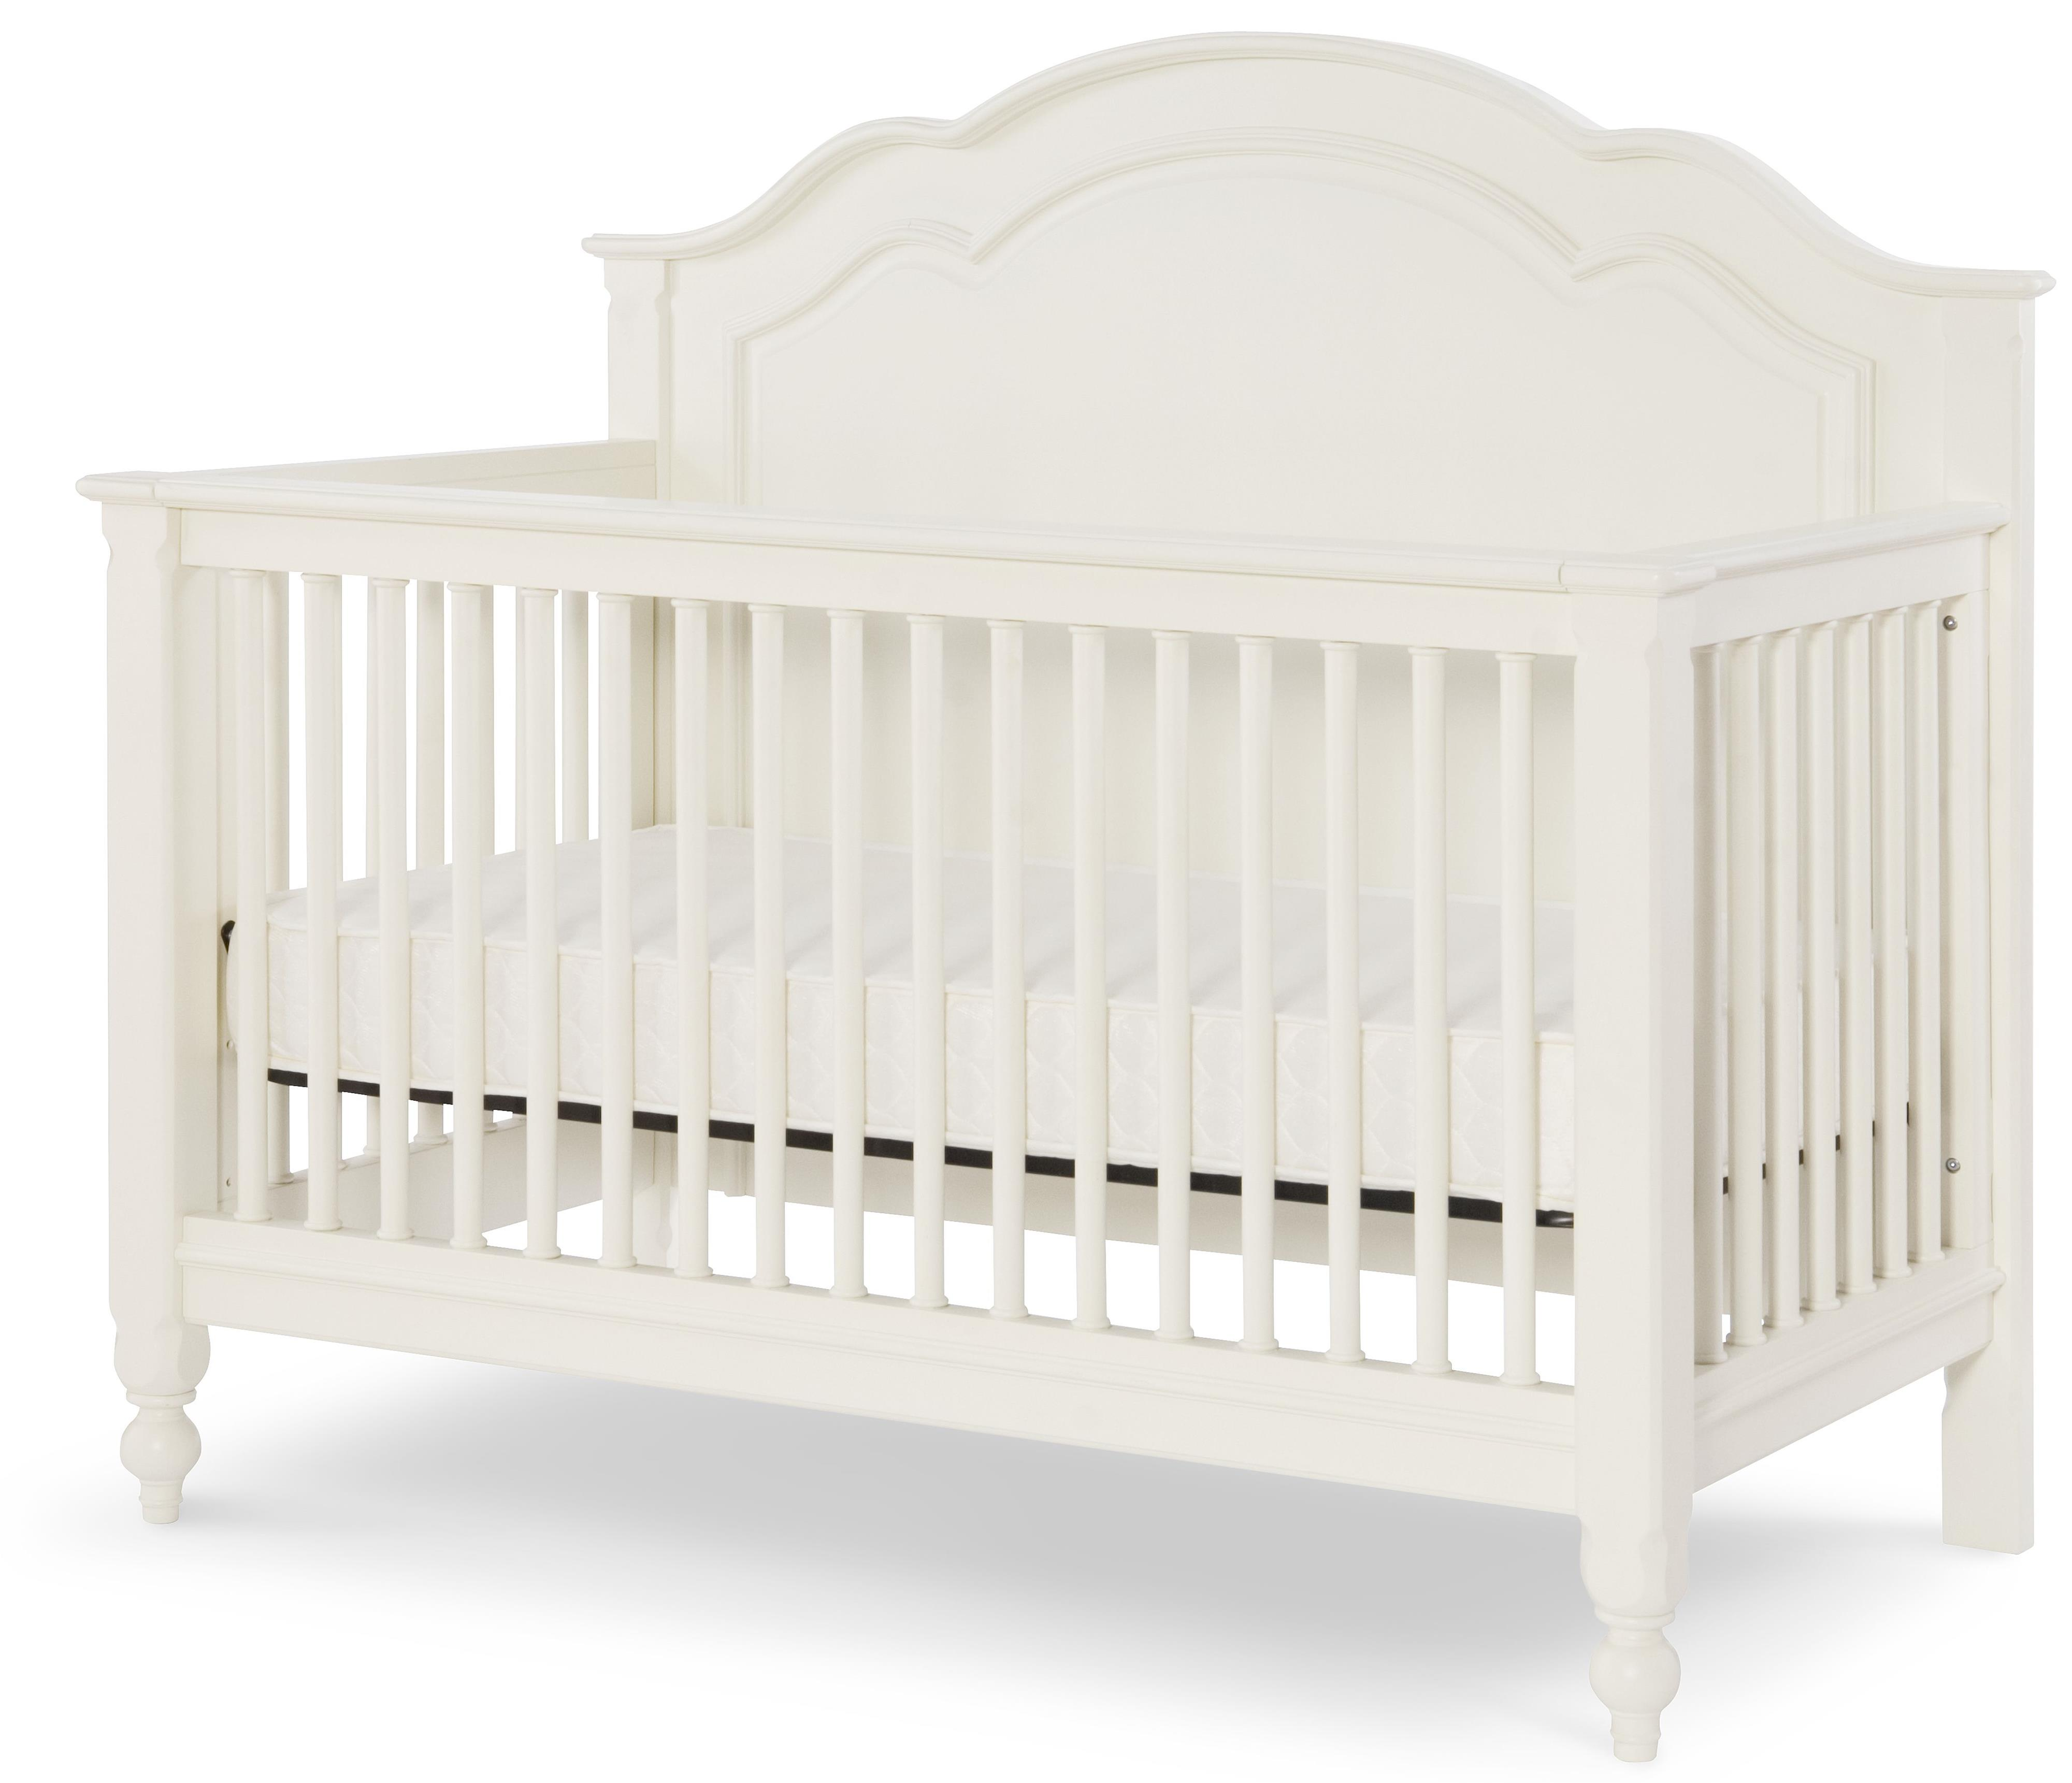 Legacy Classic Kids Harmony Convertible Crib/Toddler Bed/Daybed/Full Bed - Item Number: 4910-8900+8920+8930+888-4922